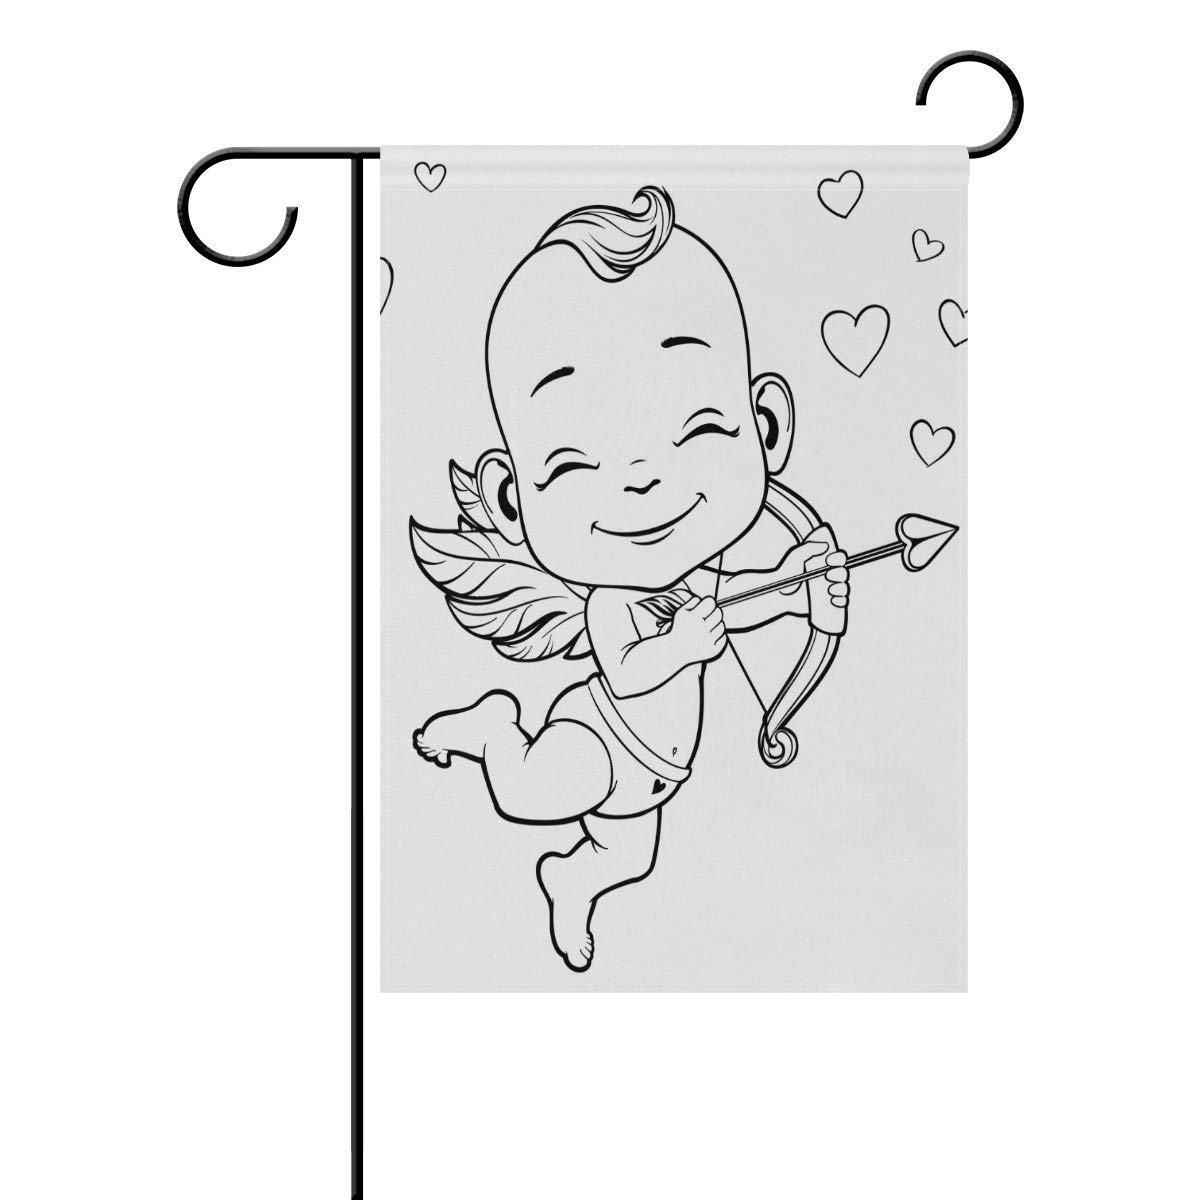 how to draw a cupid how to draw cupid step by step tutorial  create cupid draw how to a